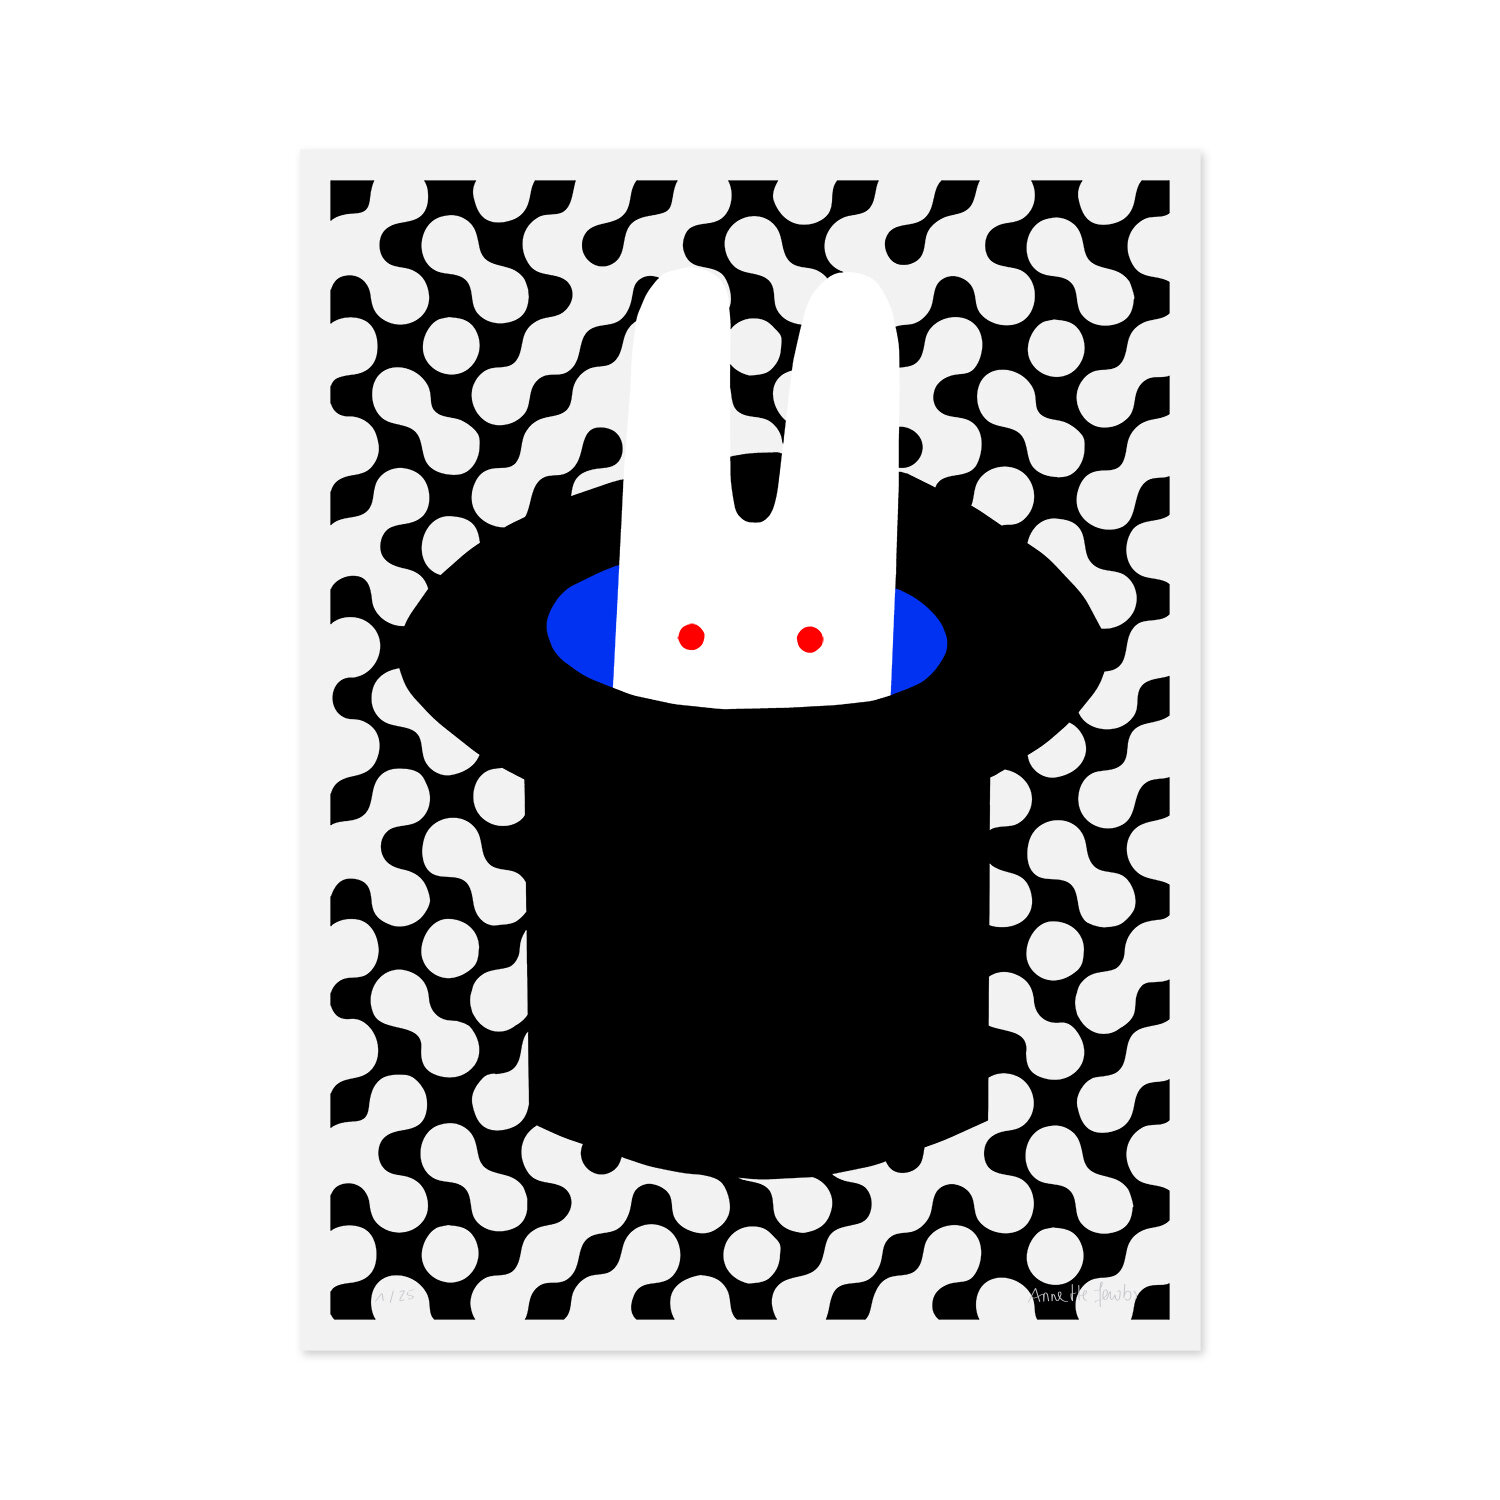 Annette_Jacobs_Zirkus_Limited_Edition_Screen_Print_Hase.jpg